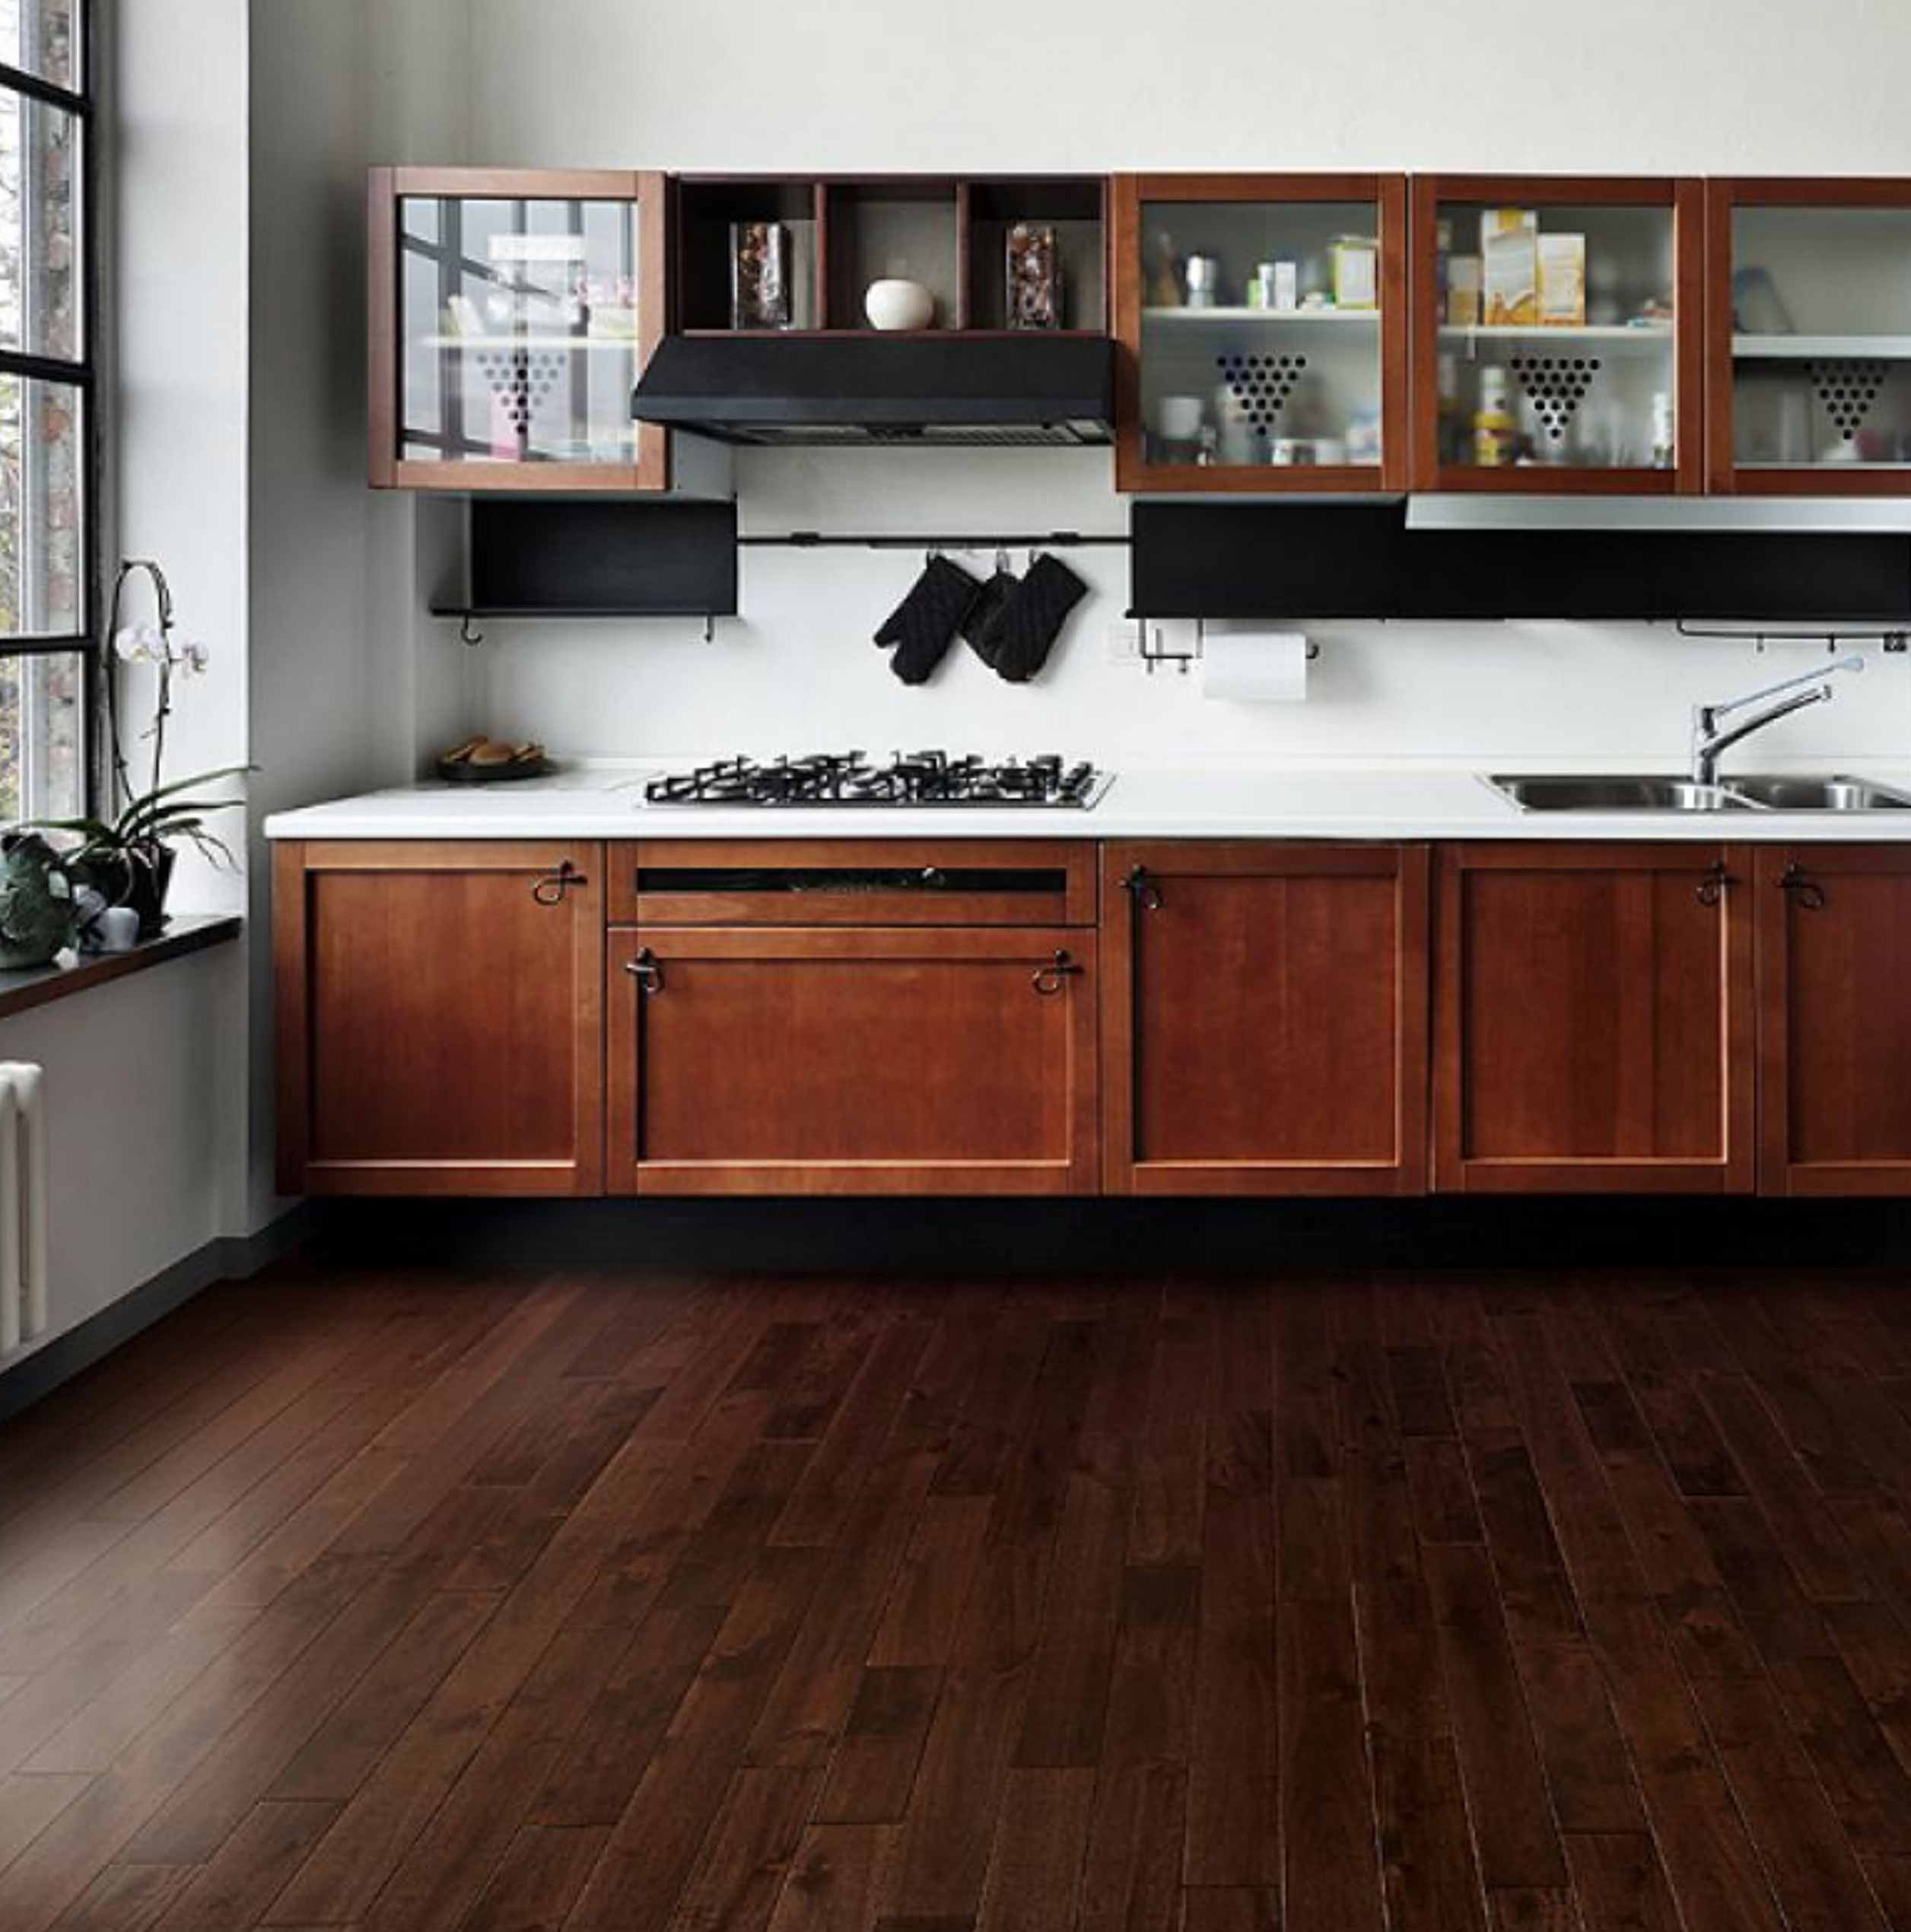 Flooring hardwood kitchen